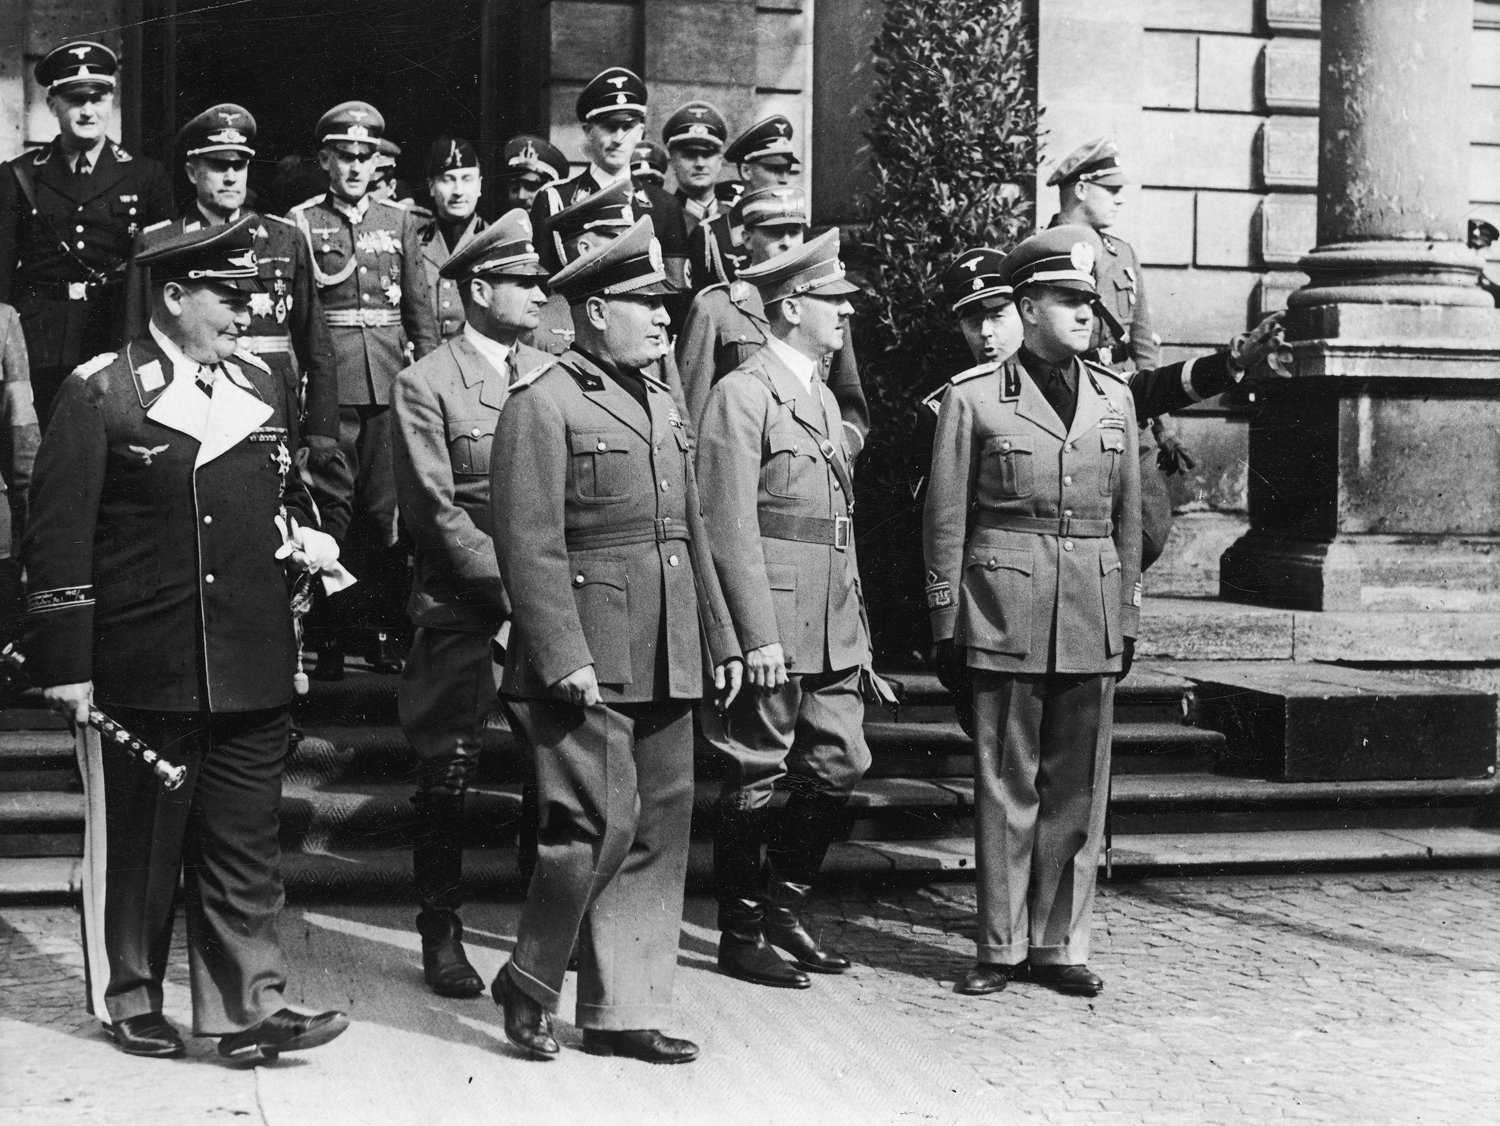 Adolf Hitler leaves Munich's station with Mussolini, Ciano and his staff before the Munich conference